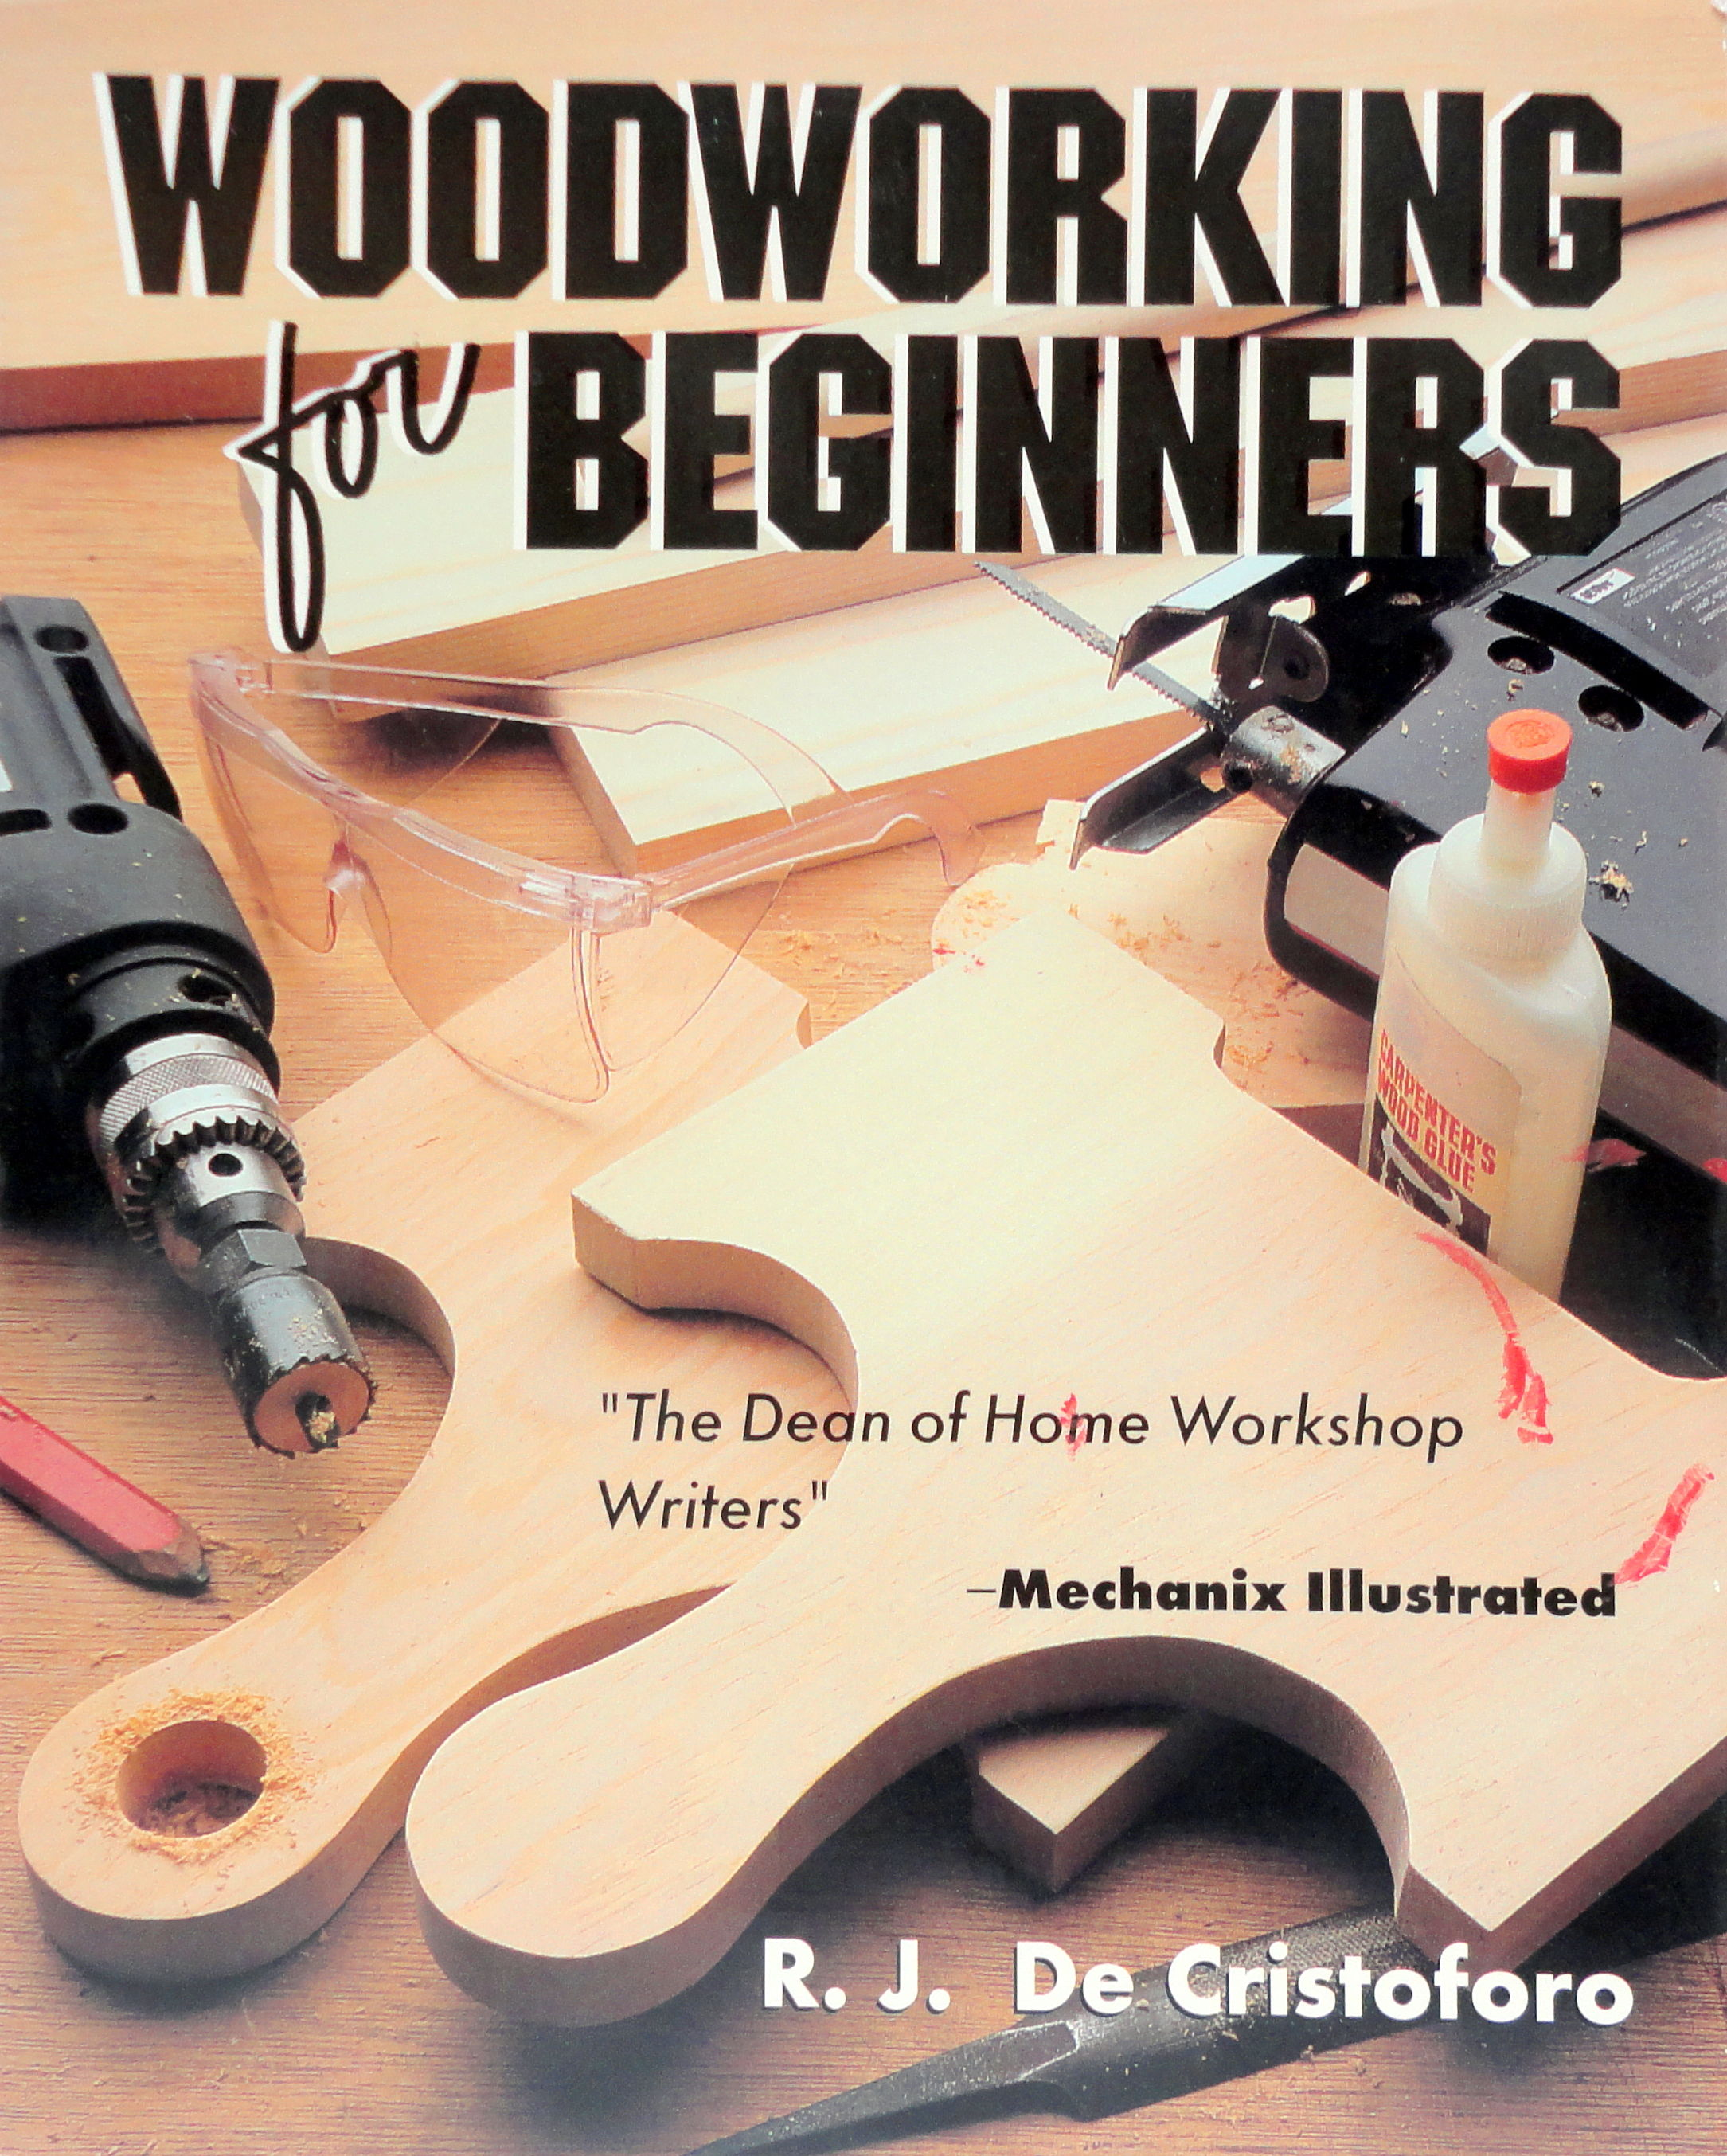 Woodworking For Beginners By R J De Cristoforo Paperback 1992 From The Parnassus Bookshop Sku 018282